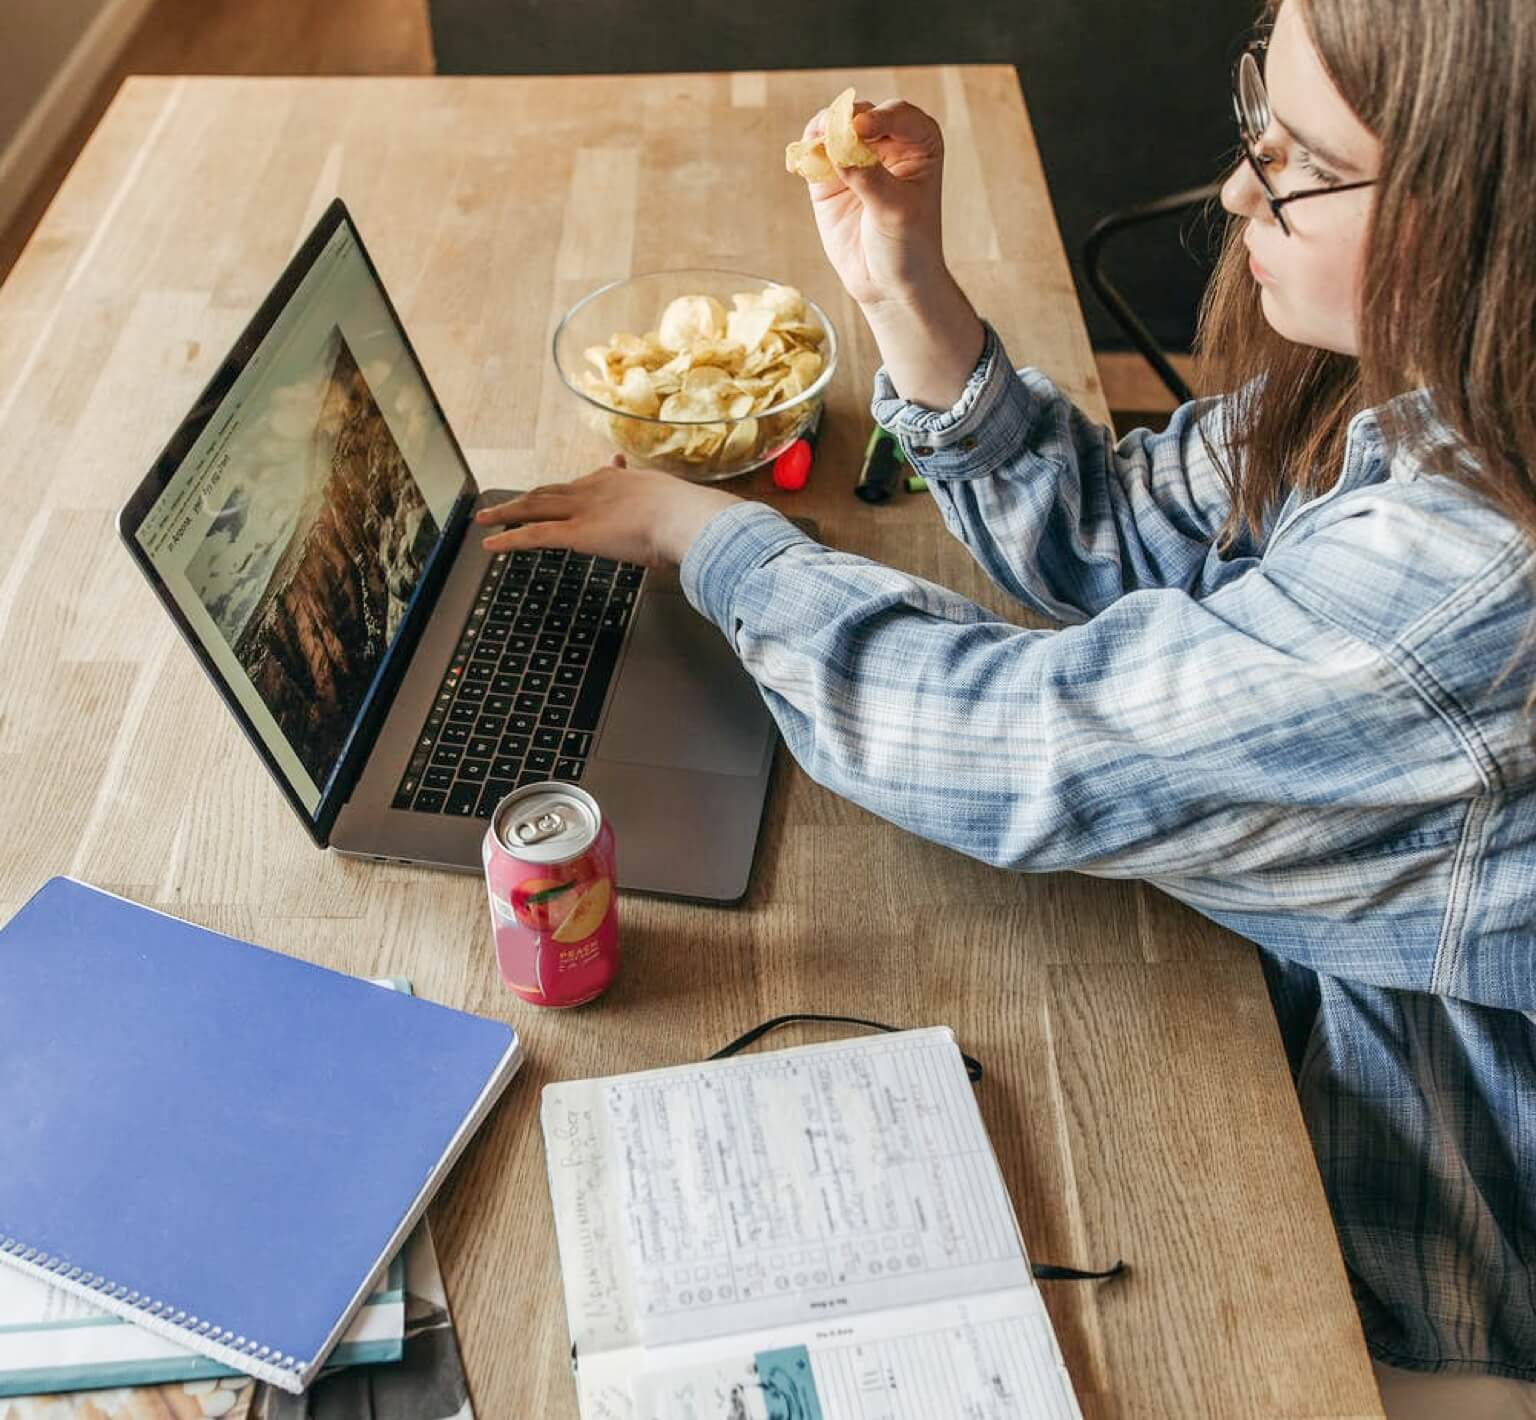 A person studying on a table with books and a laptop while eating a snack.